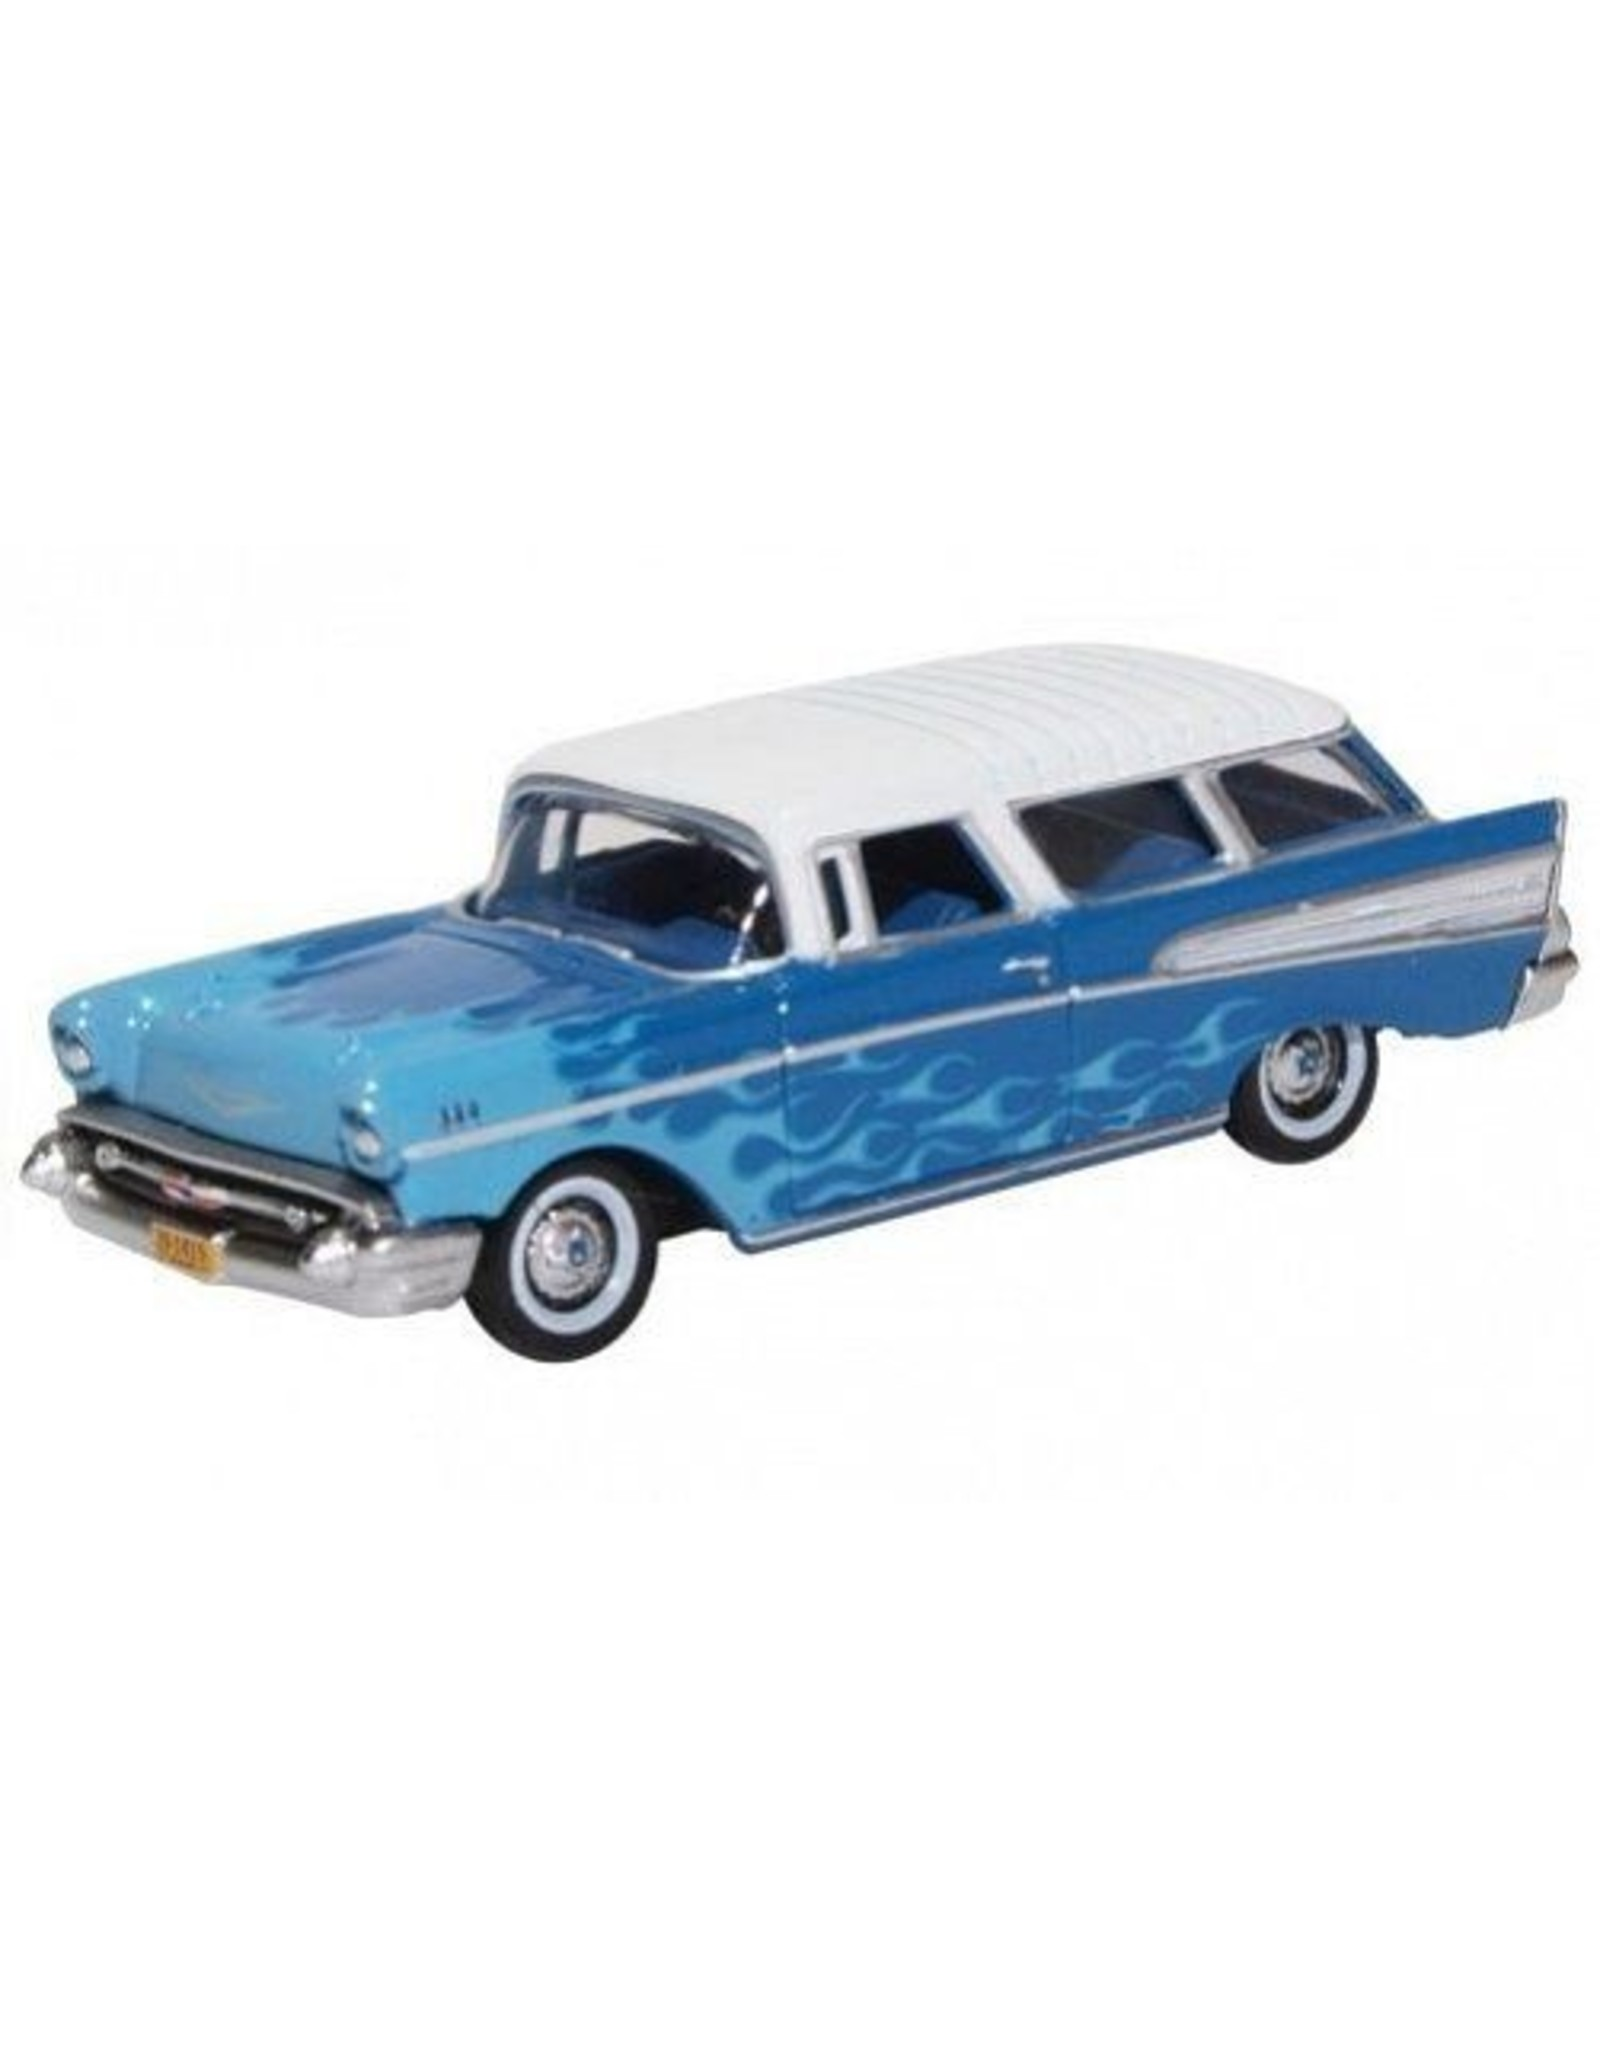 Chevrolet CHEVROLET NOMAD 1957 HOT ROD(two tones blue/white roof)